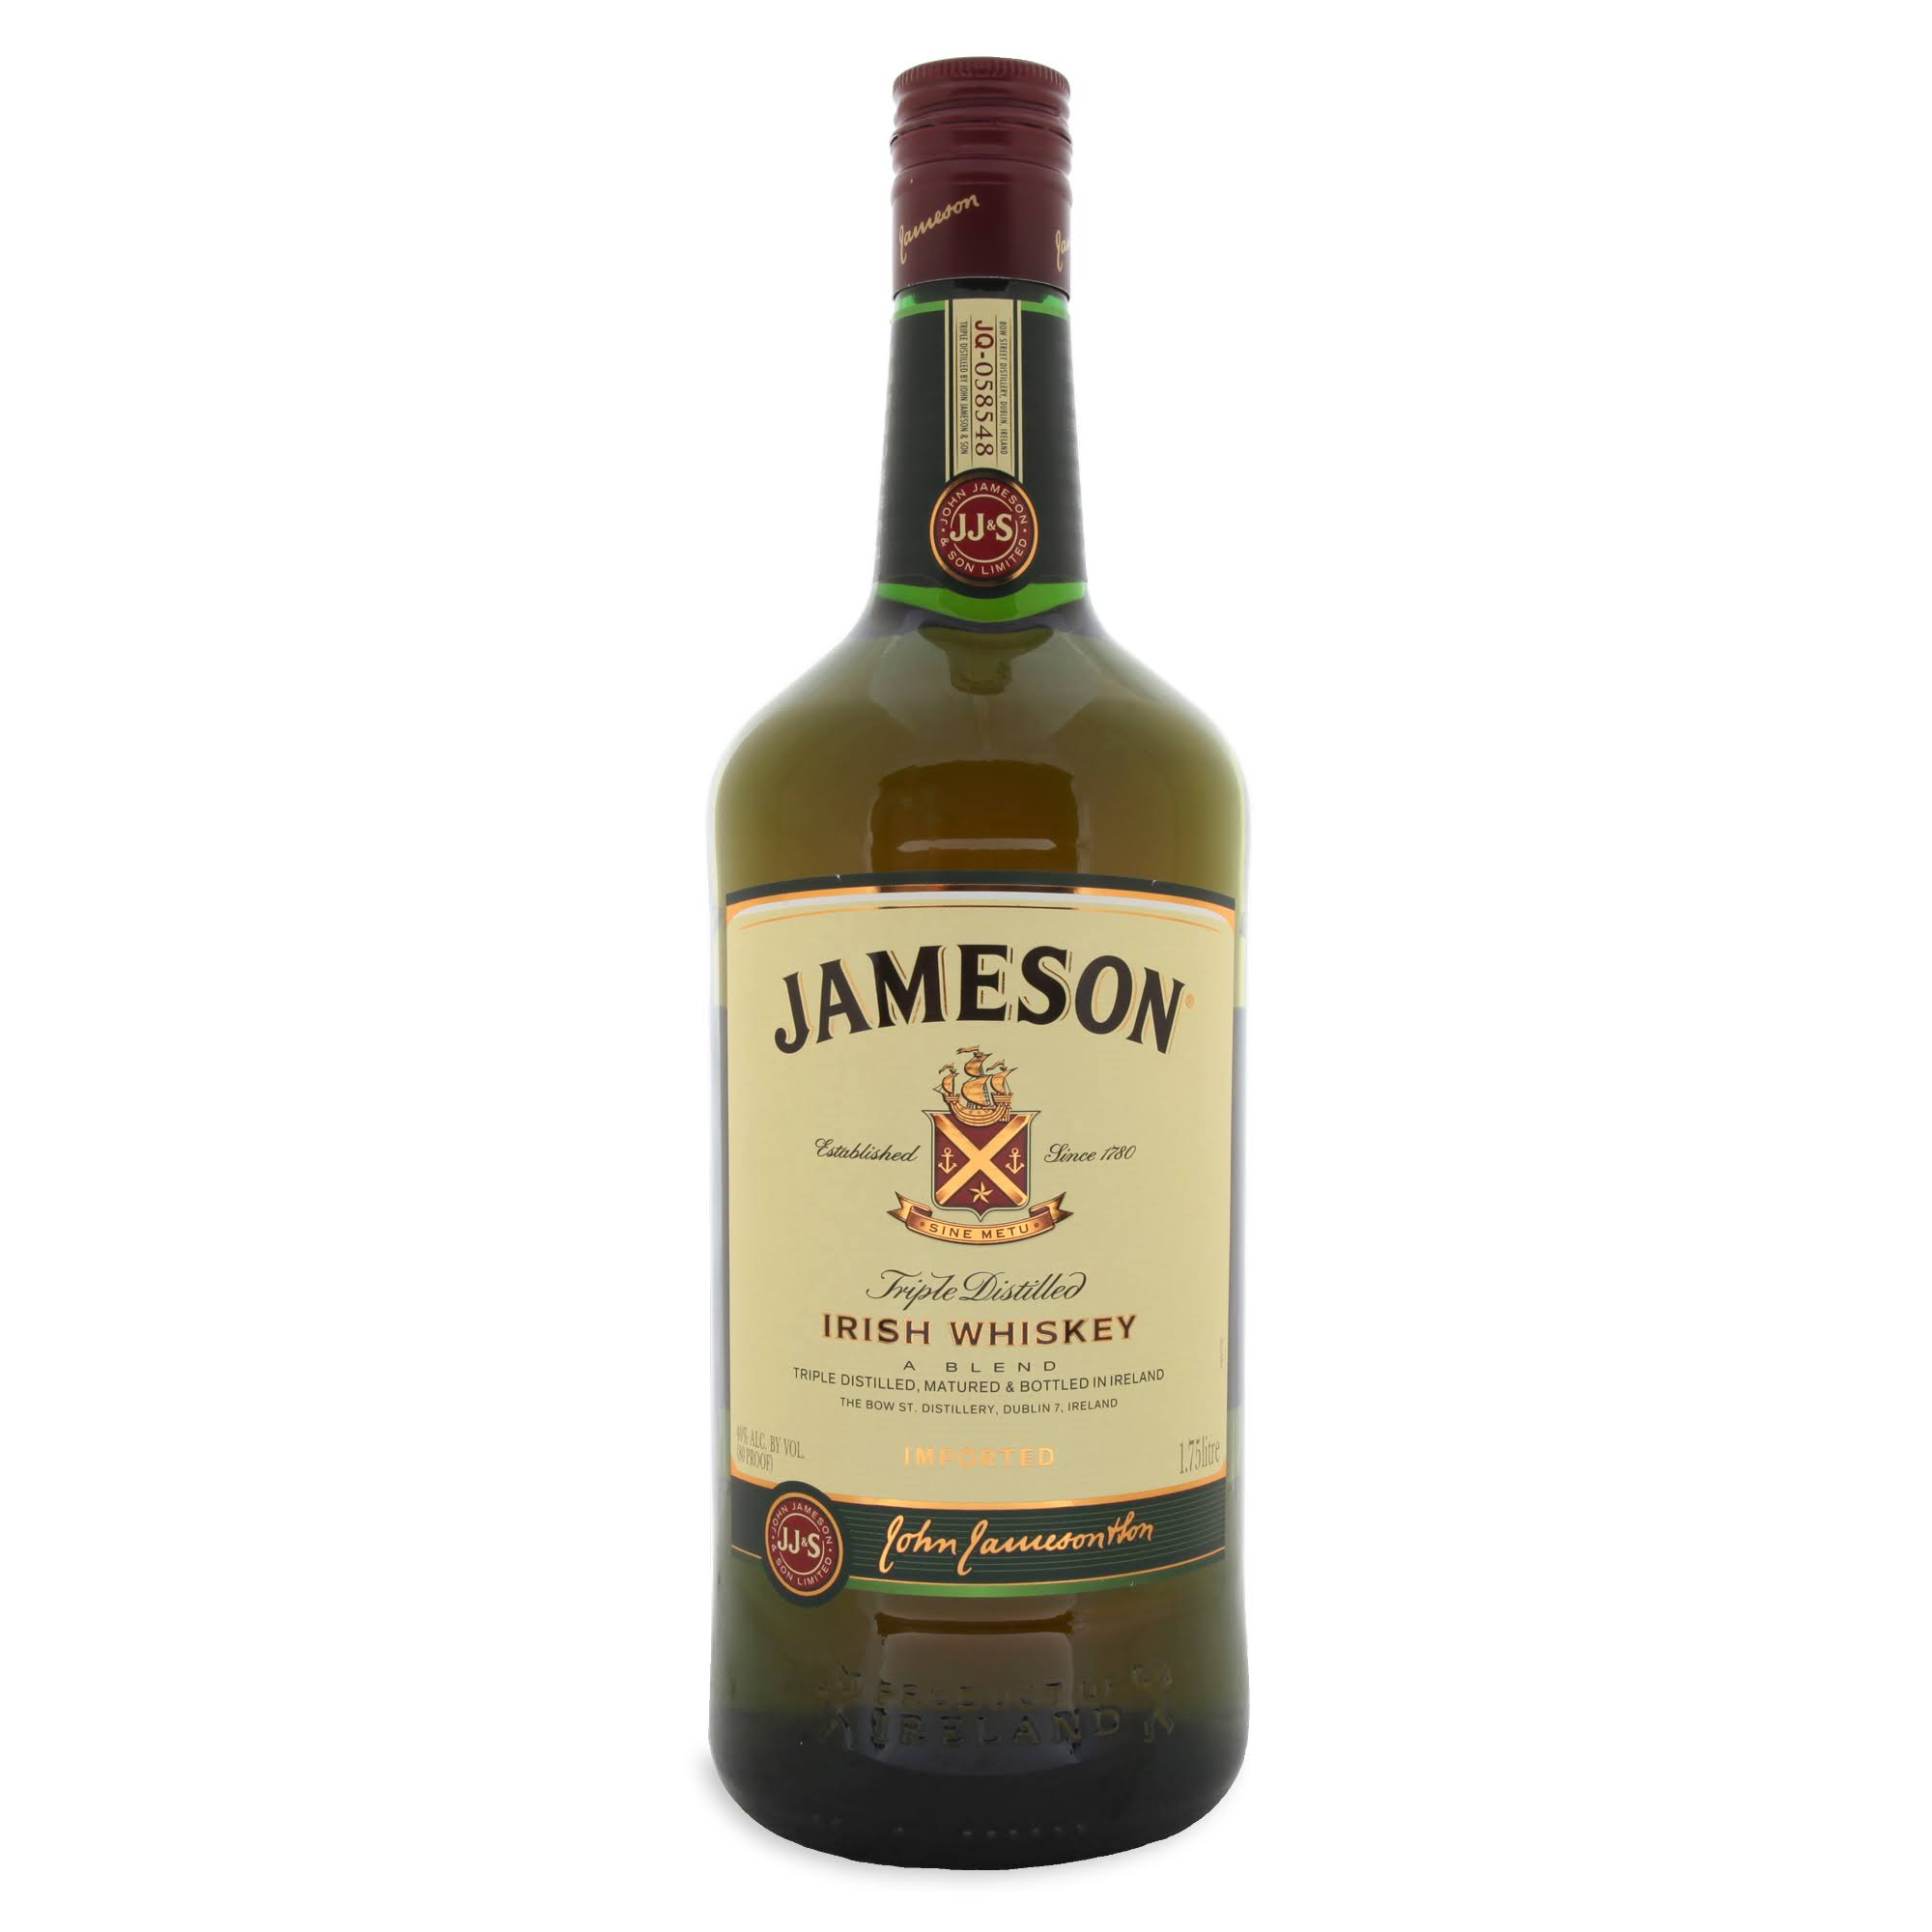 Jameson Whiskey, Irish, Triple Distilled - 1.75 lt